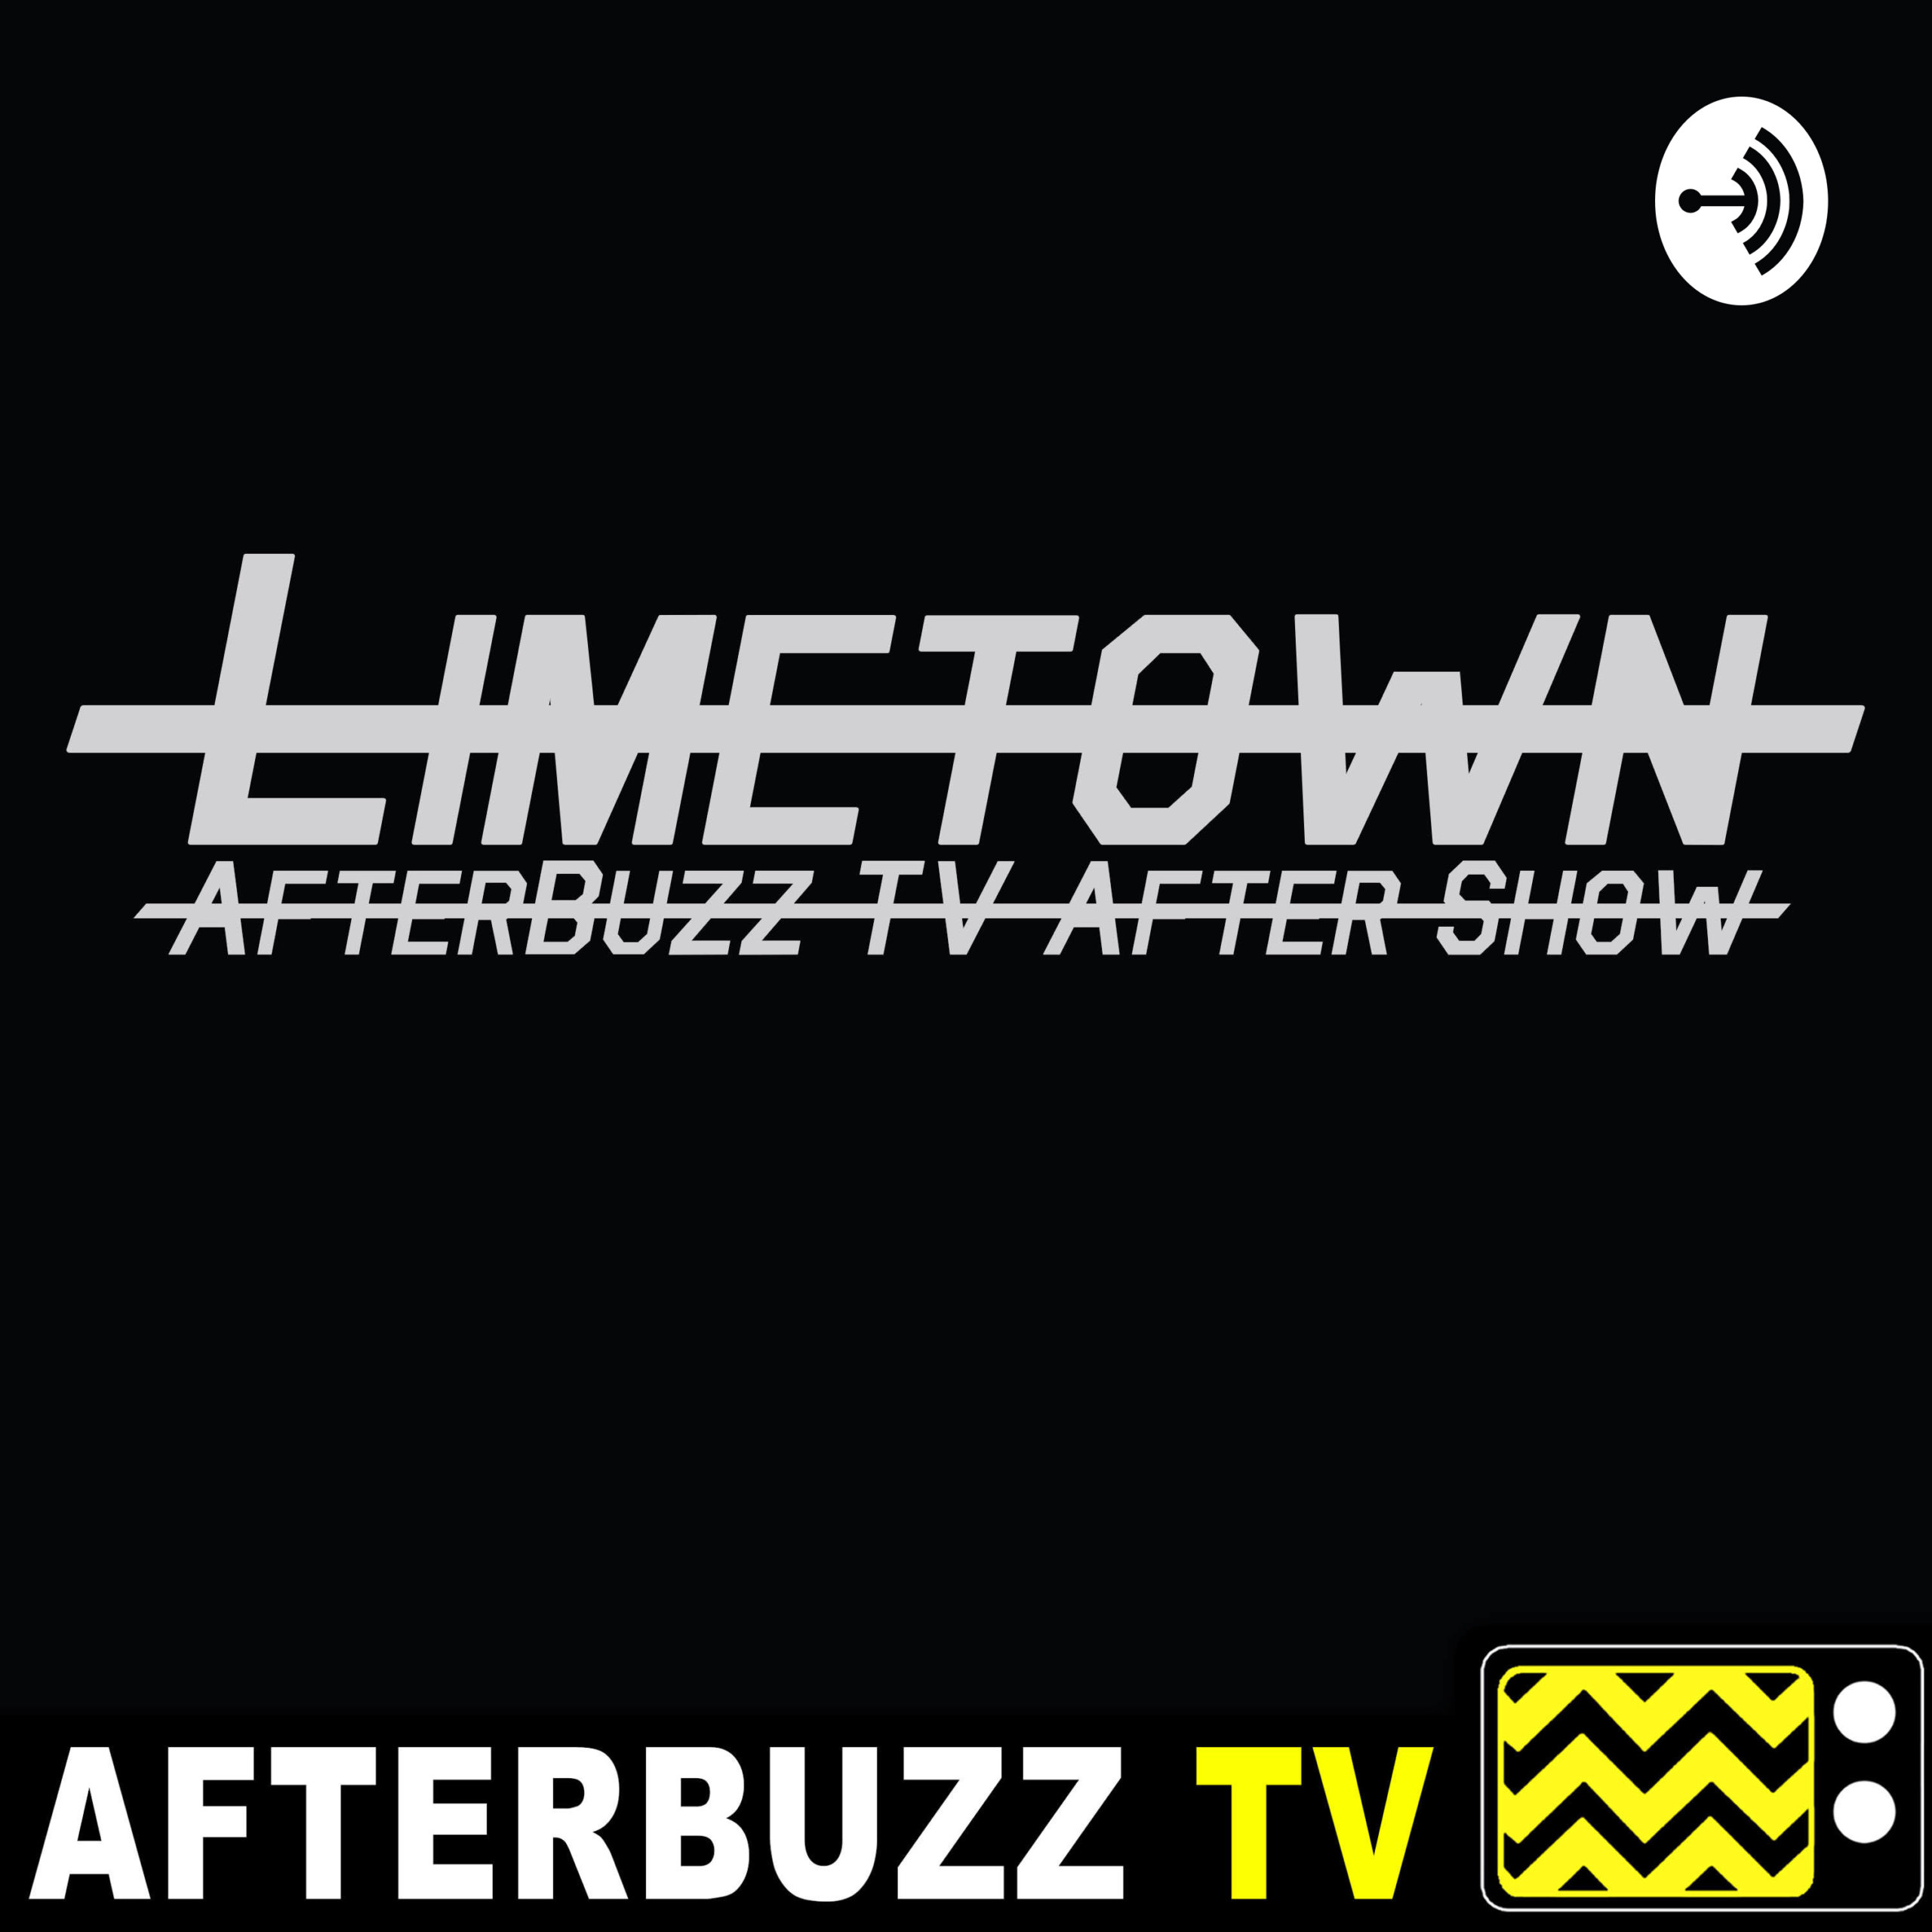 """Apples and Oranges; Answers"" Season 1 Episodes 9 & 10 'Limetown' Review"